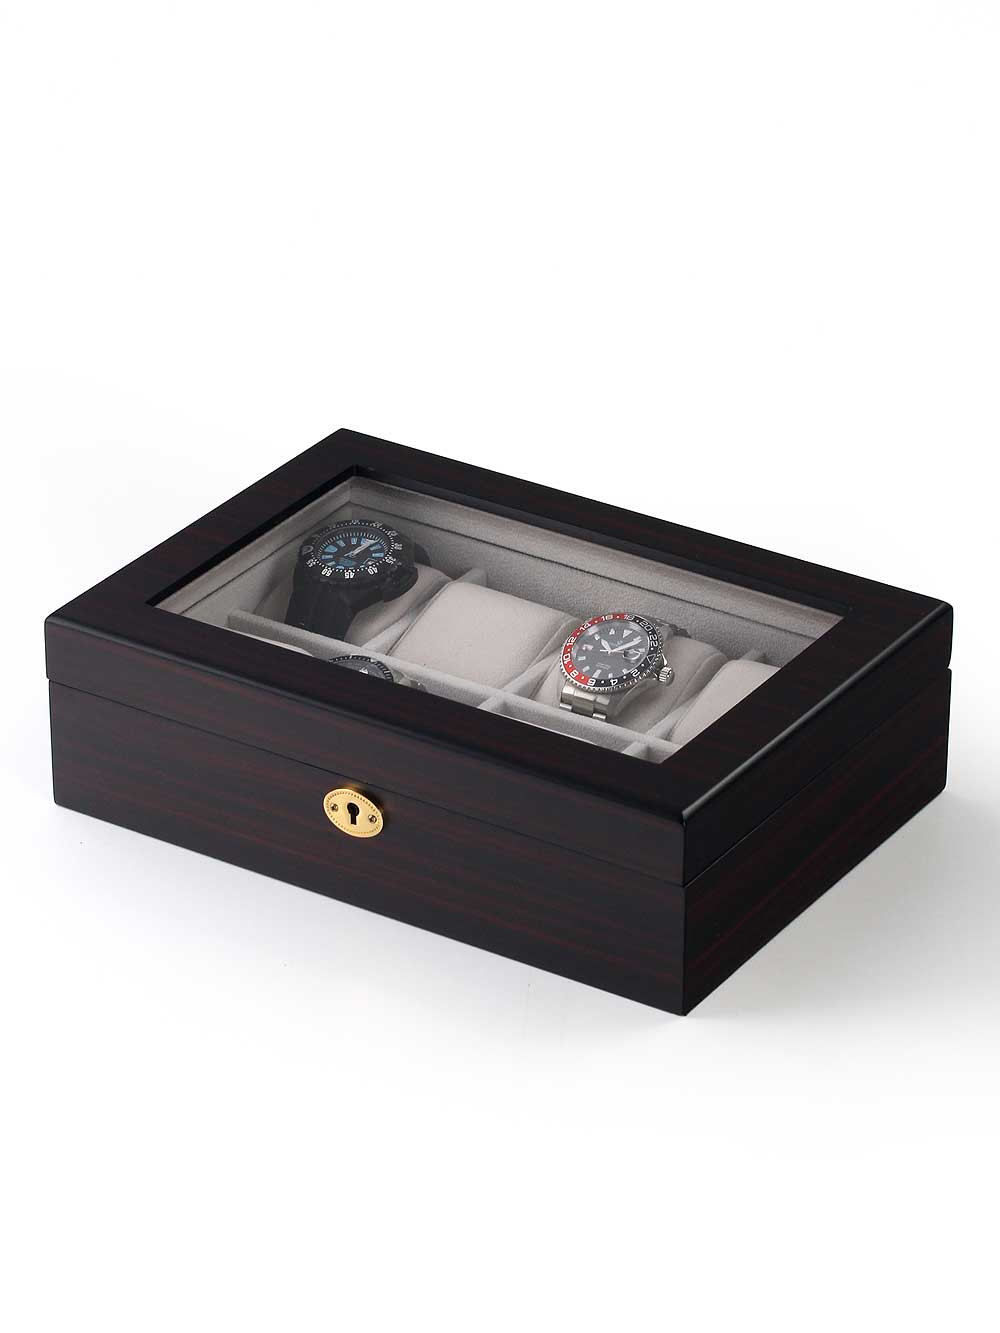 Rothenschild Watch Box RS-2105-8E for 8 Watches Ebony